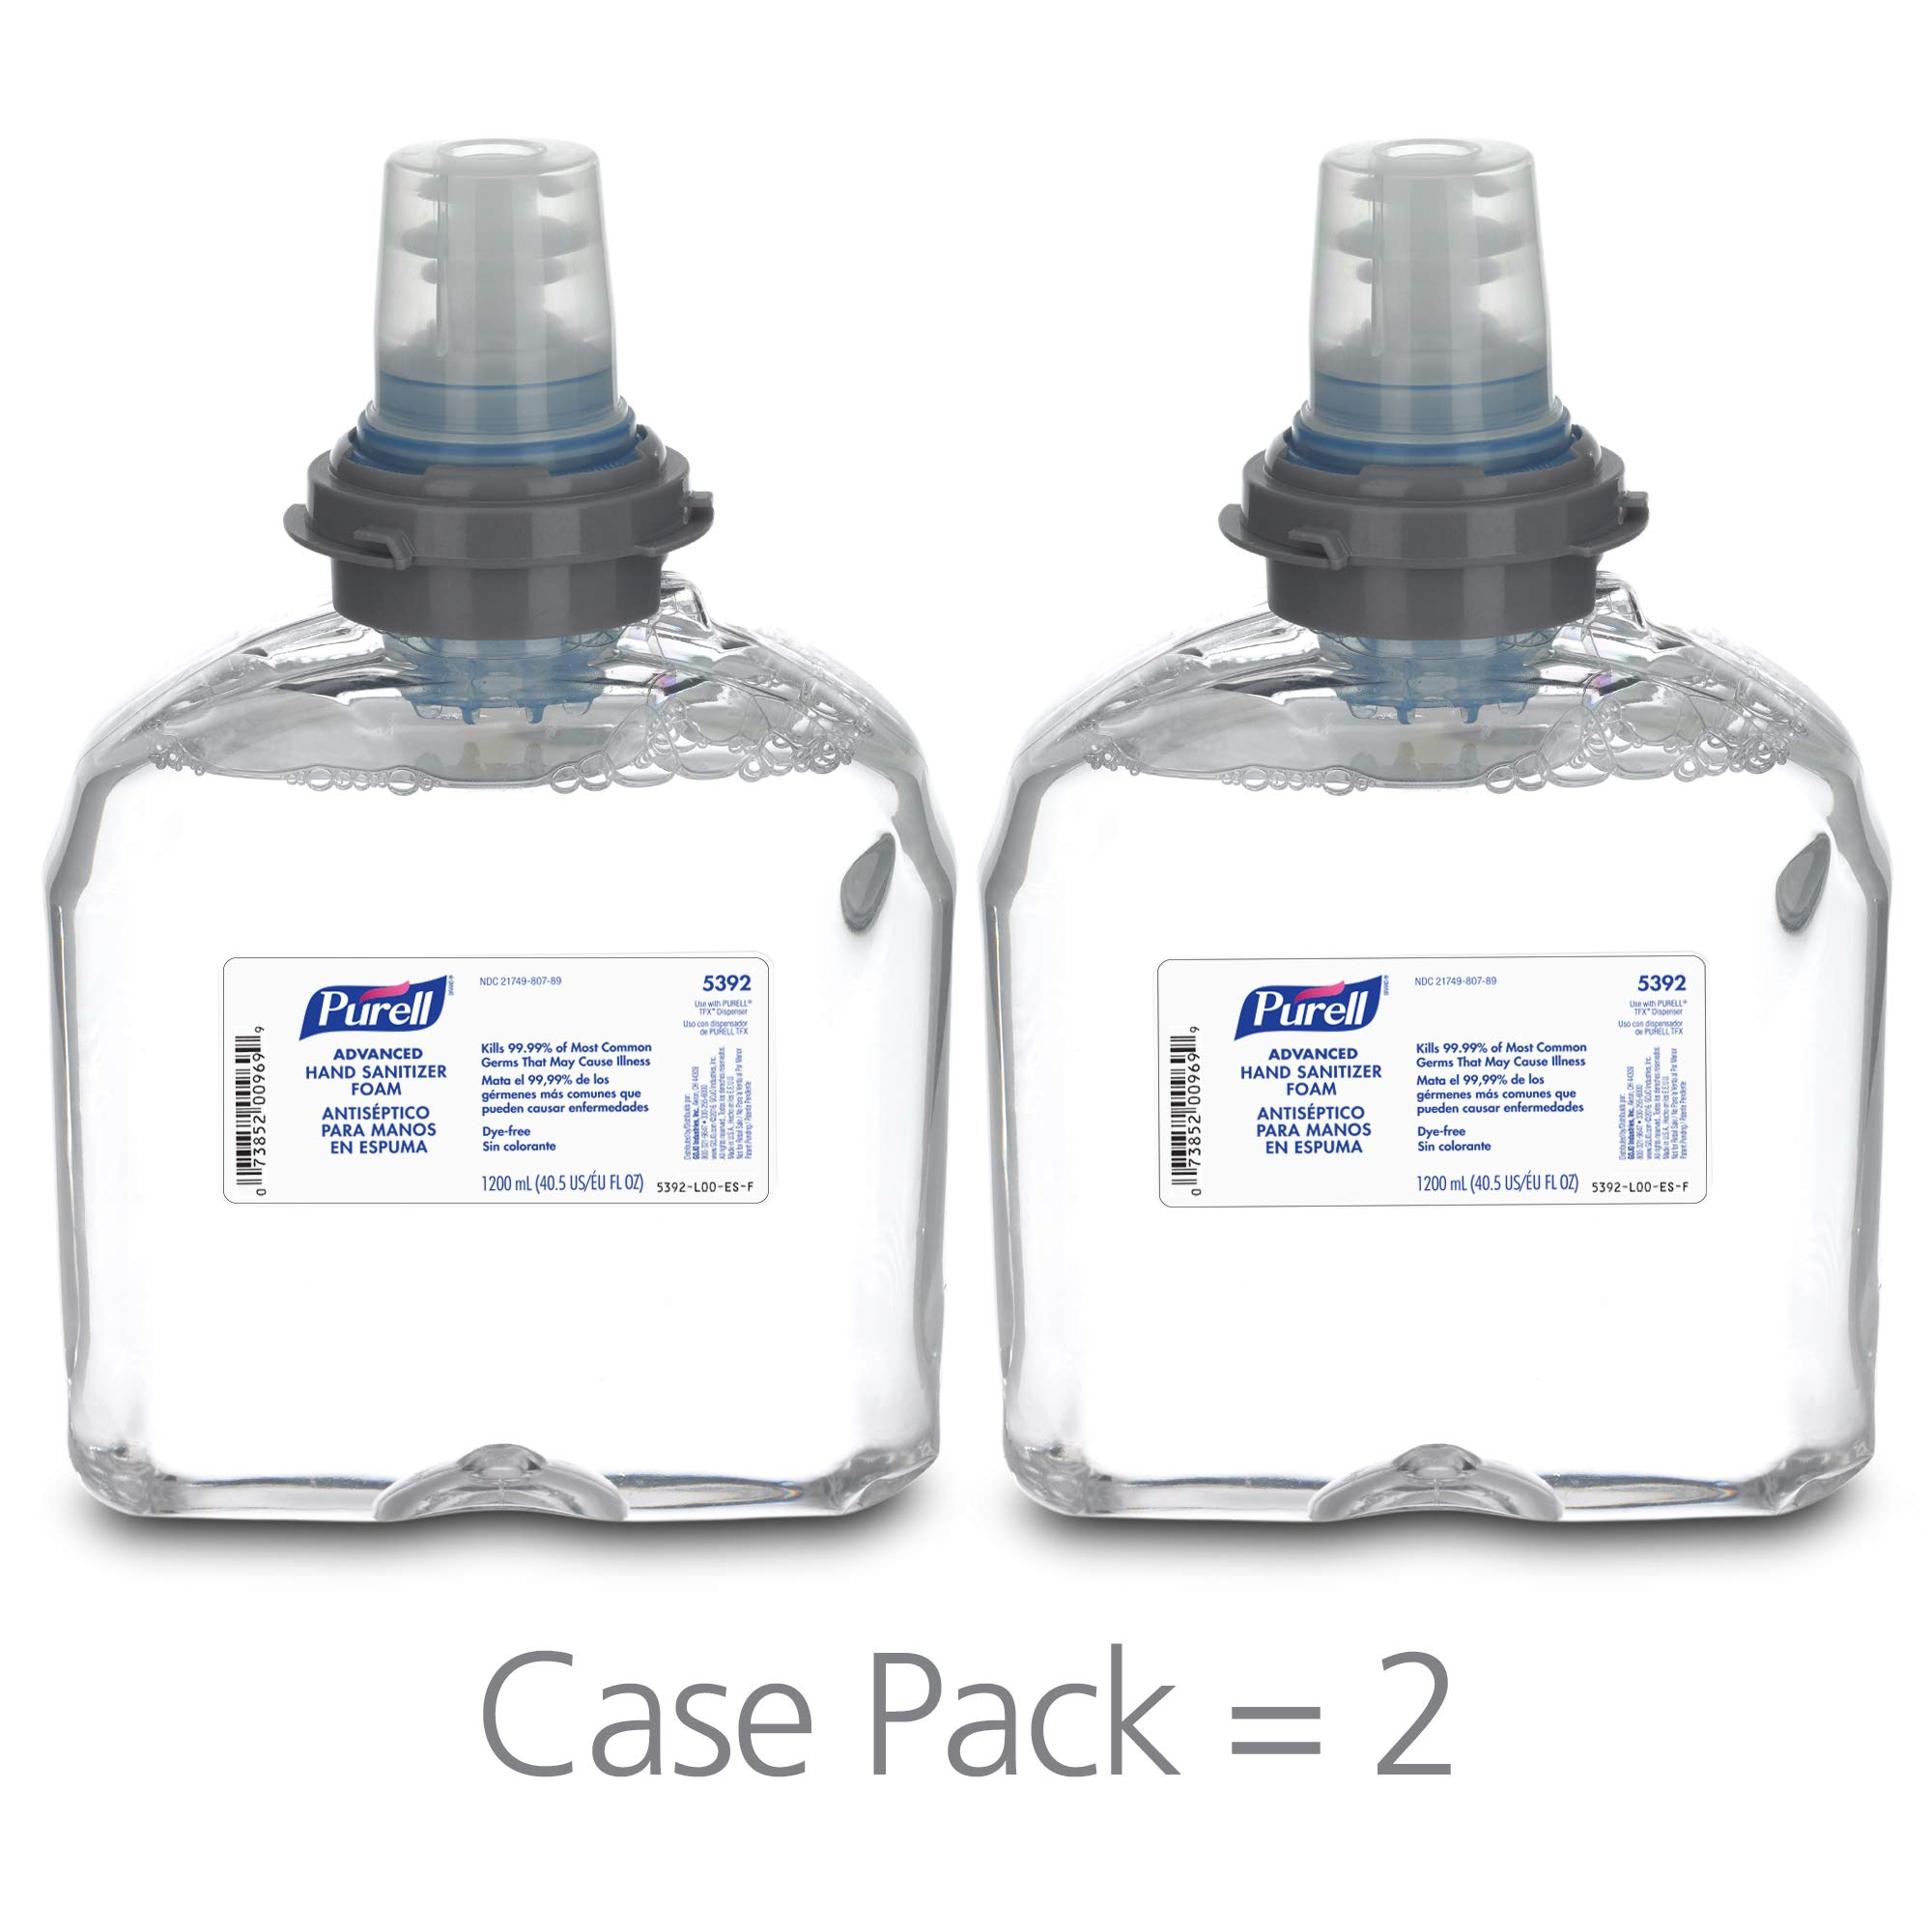 PURELL Advanced Hand Sanitizer Foam, Clean Scent, 1200 mL Hand Sanitizer Foam Refill for PURELL TFX Touch-Free Dispenser (Pack of 2) - 5392-02 by Purell